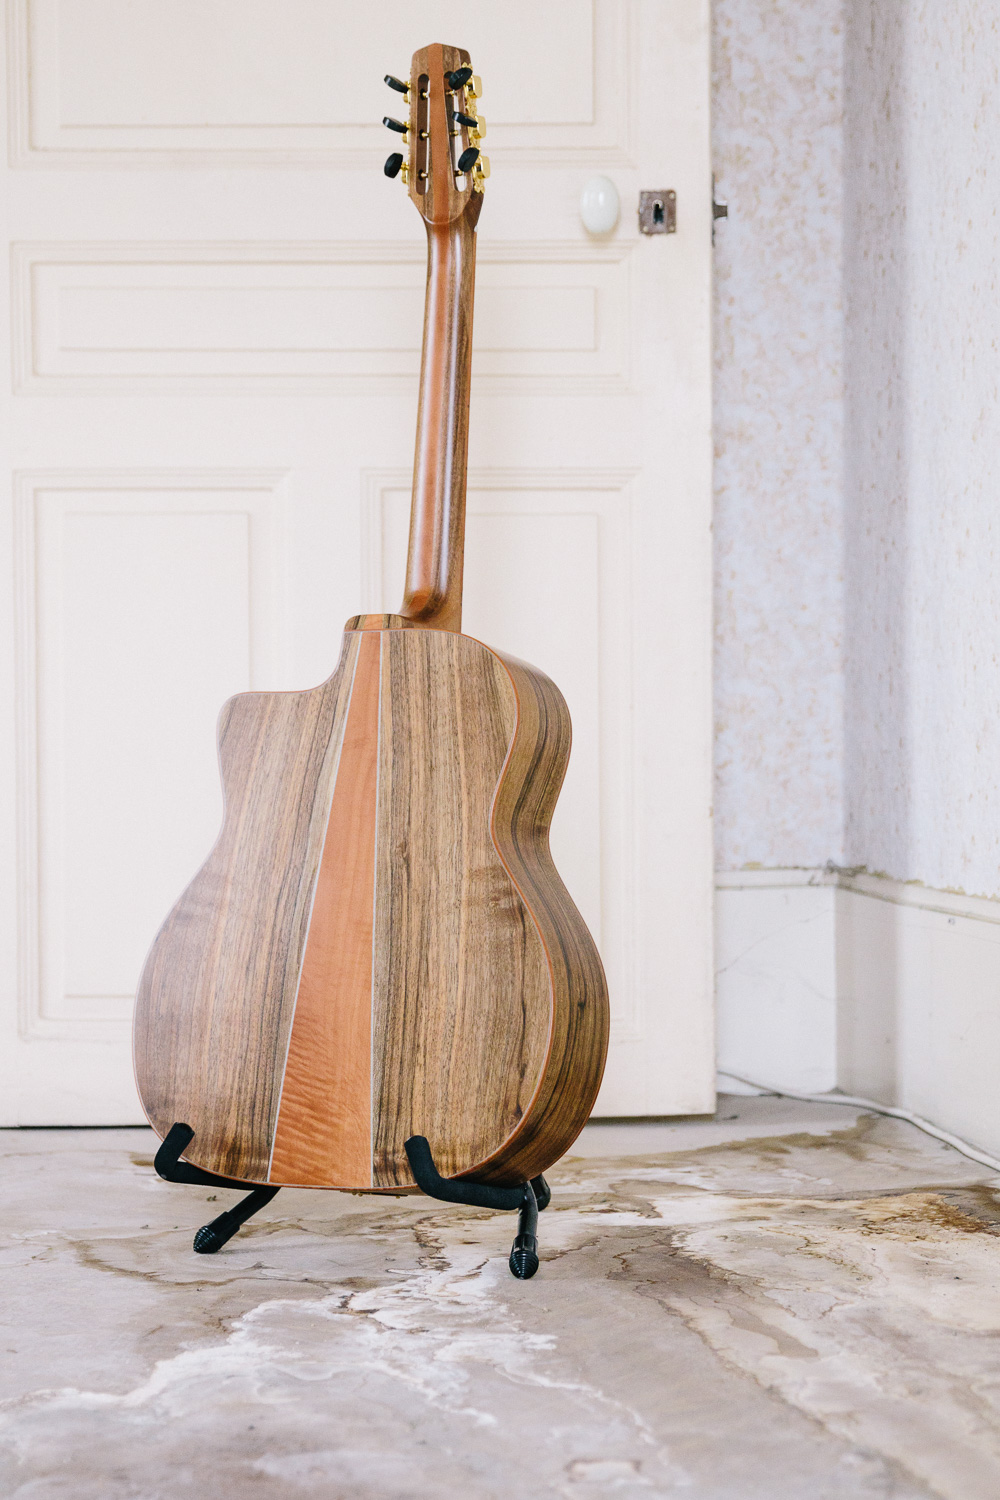 Guitare acoustique - Guitare jazz manouche - Détail dos en 3 parties